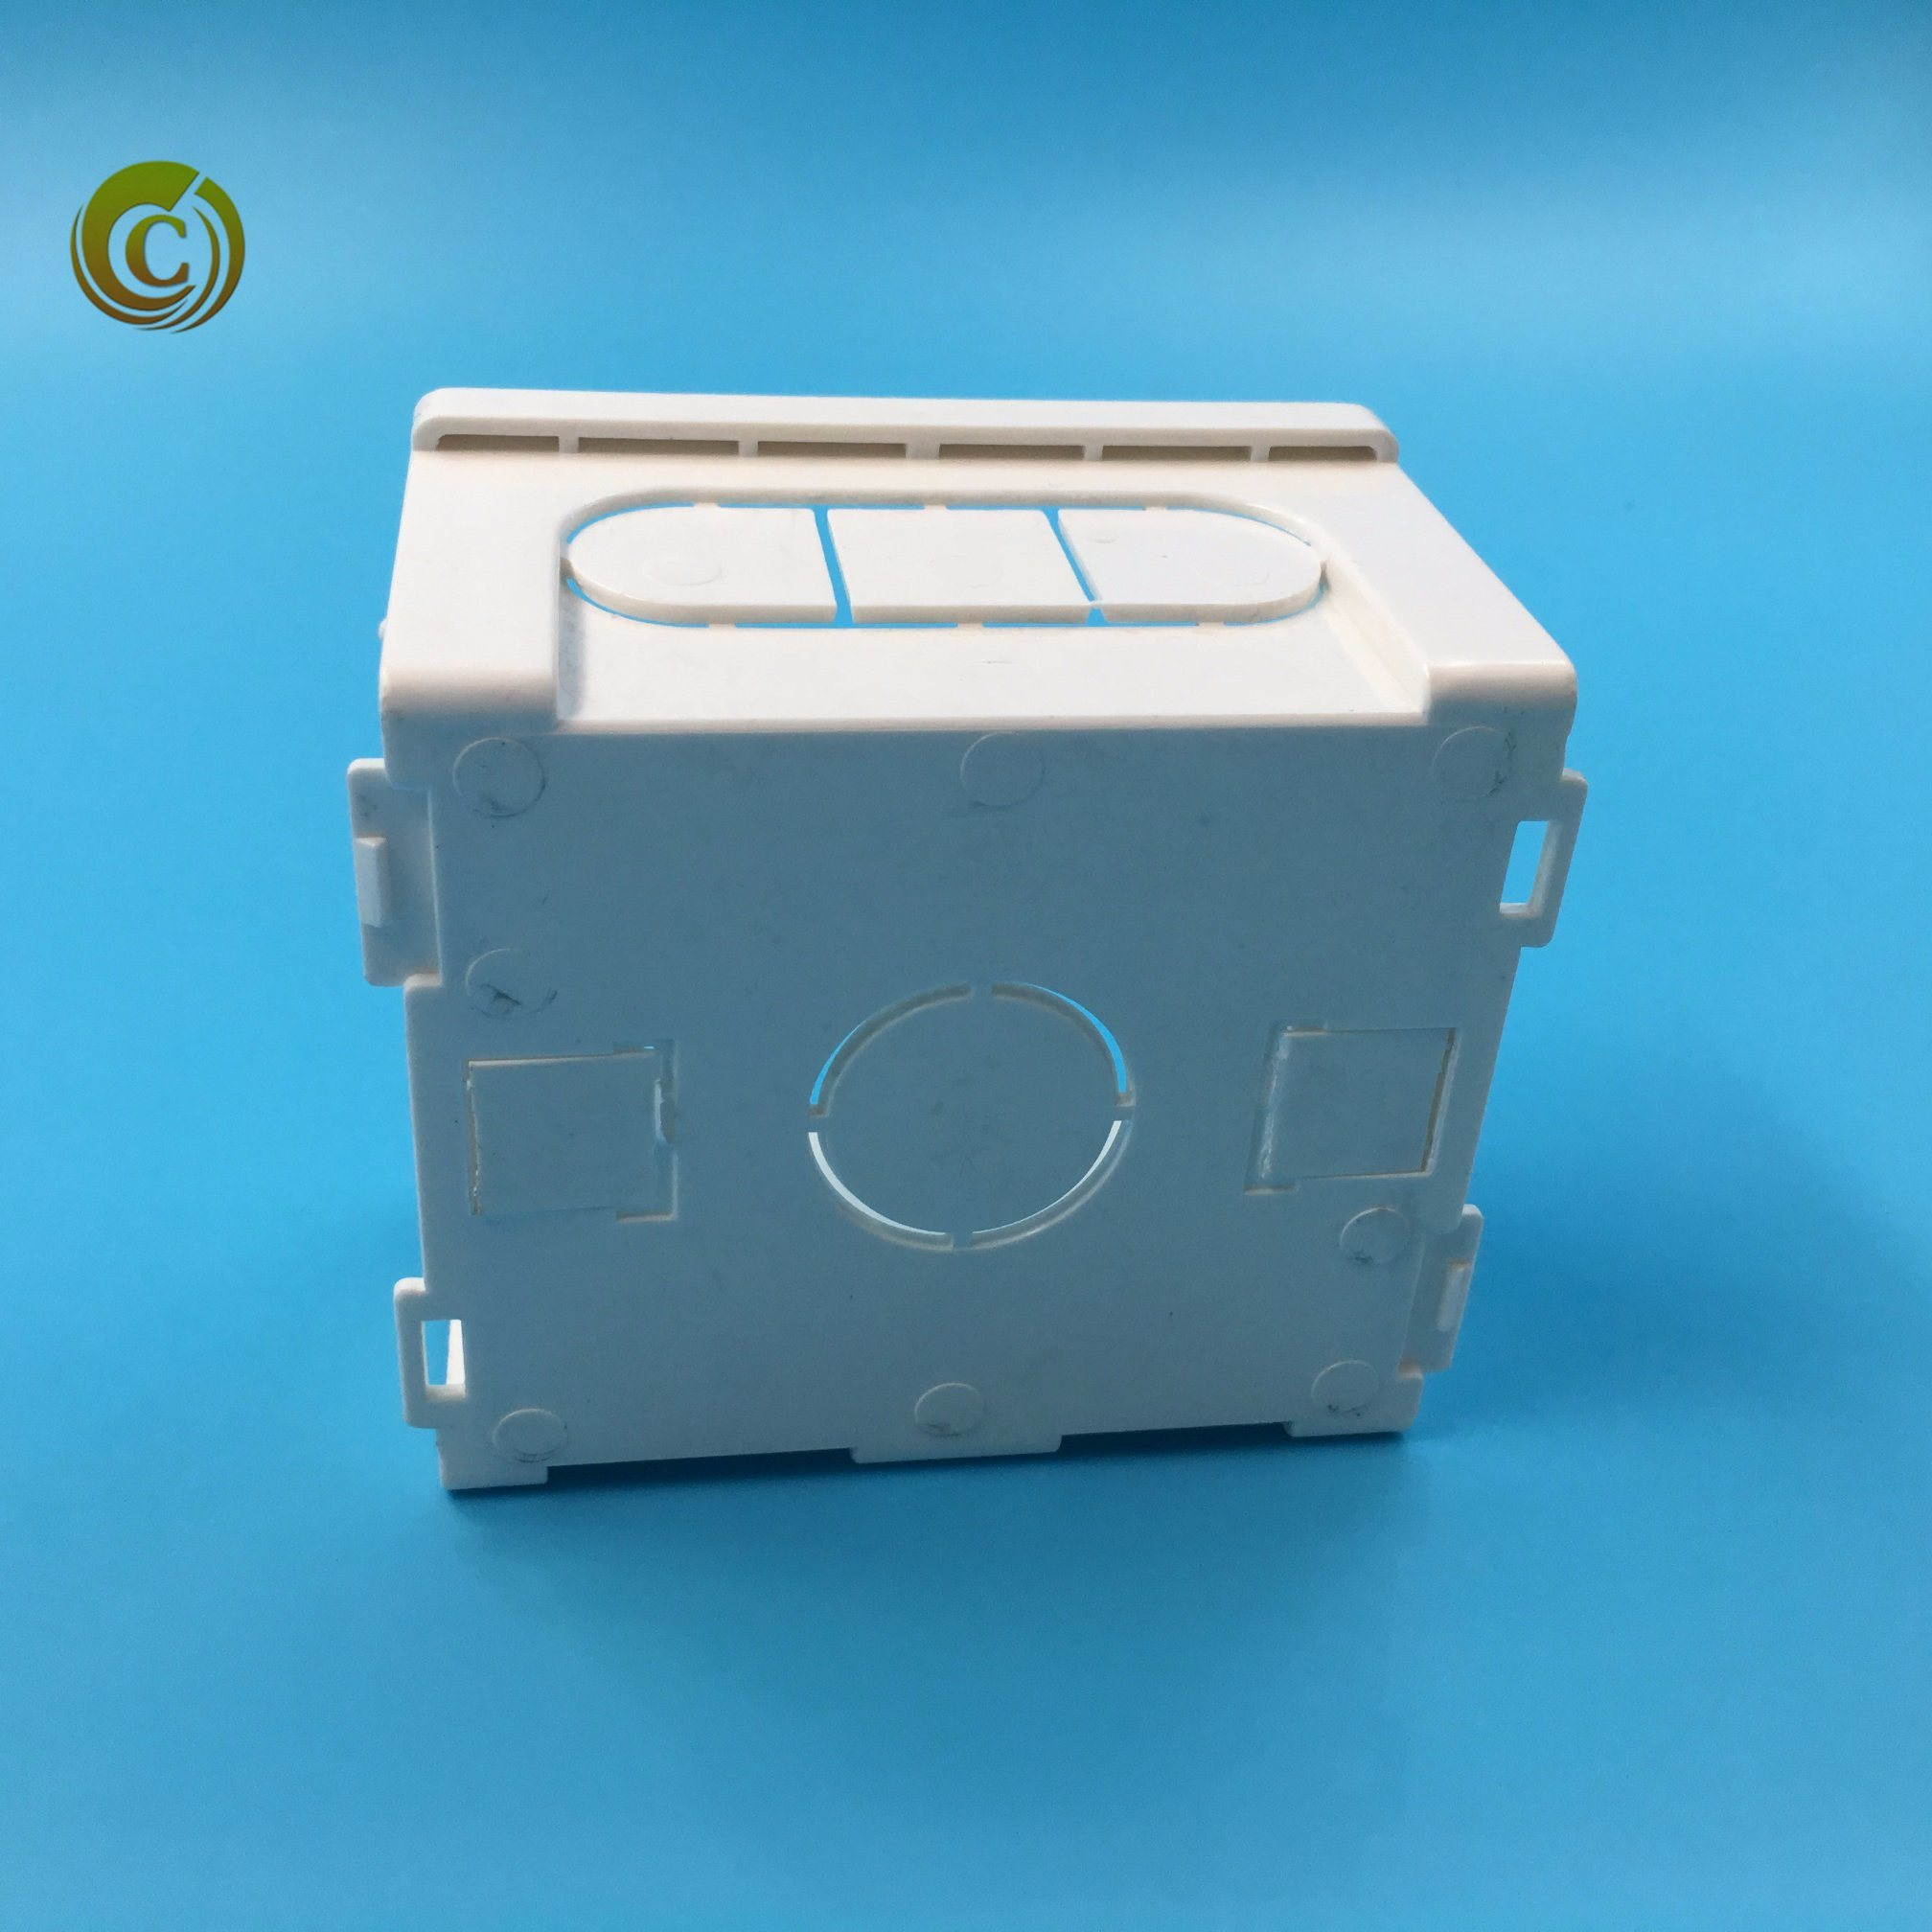 China PVC Switch Box Distributor Electrical Connection Box Wall ...